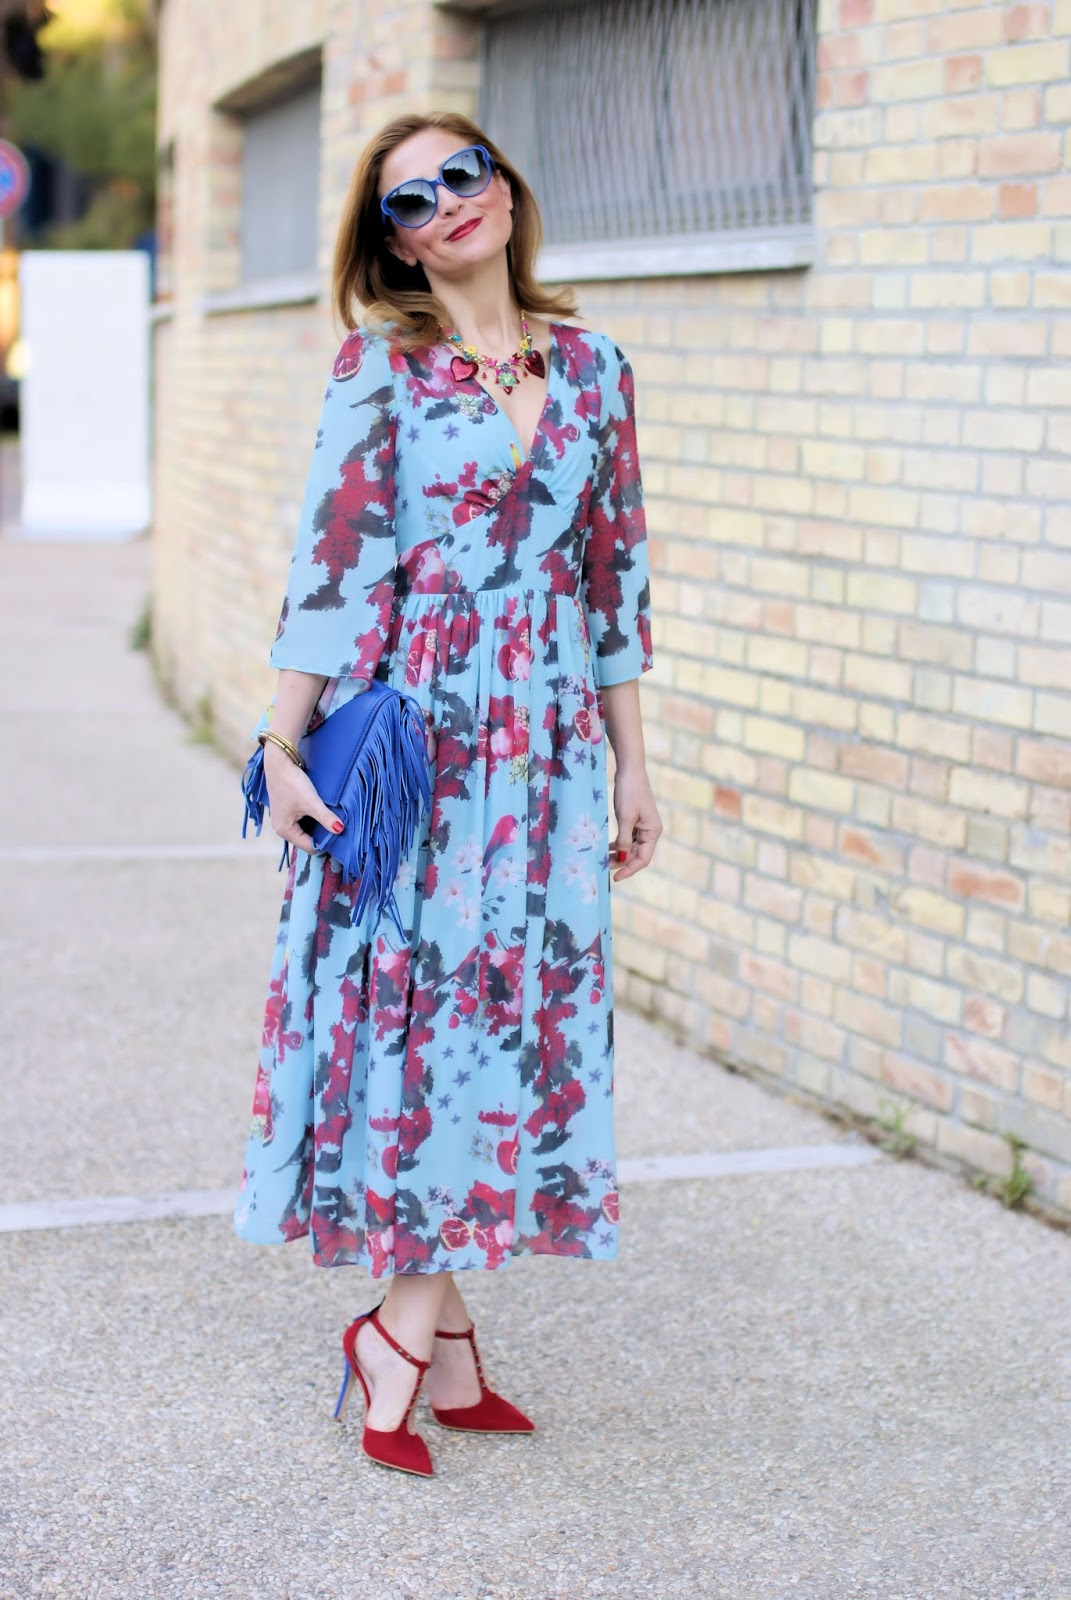 Metisu floral dress and shoes from Angela Pavese on Fashion and Cookies fashion blog, fashion blogger style